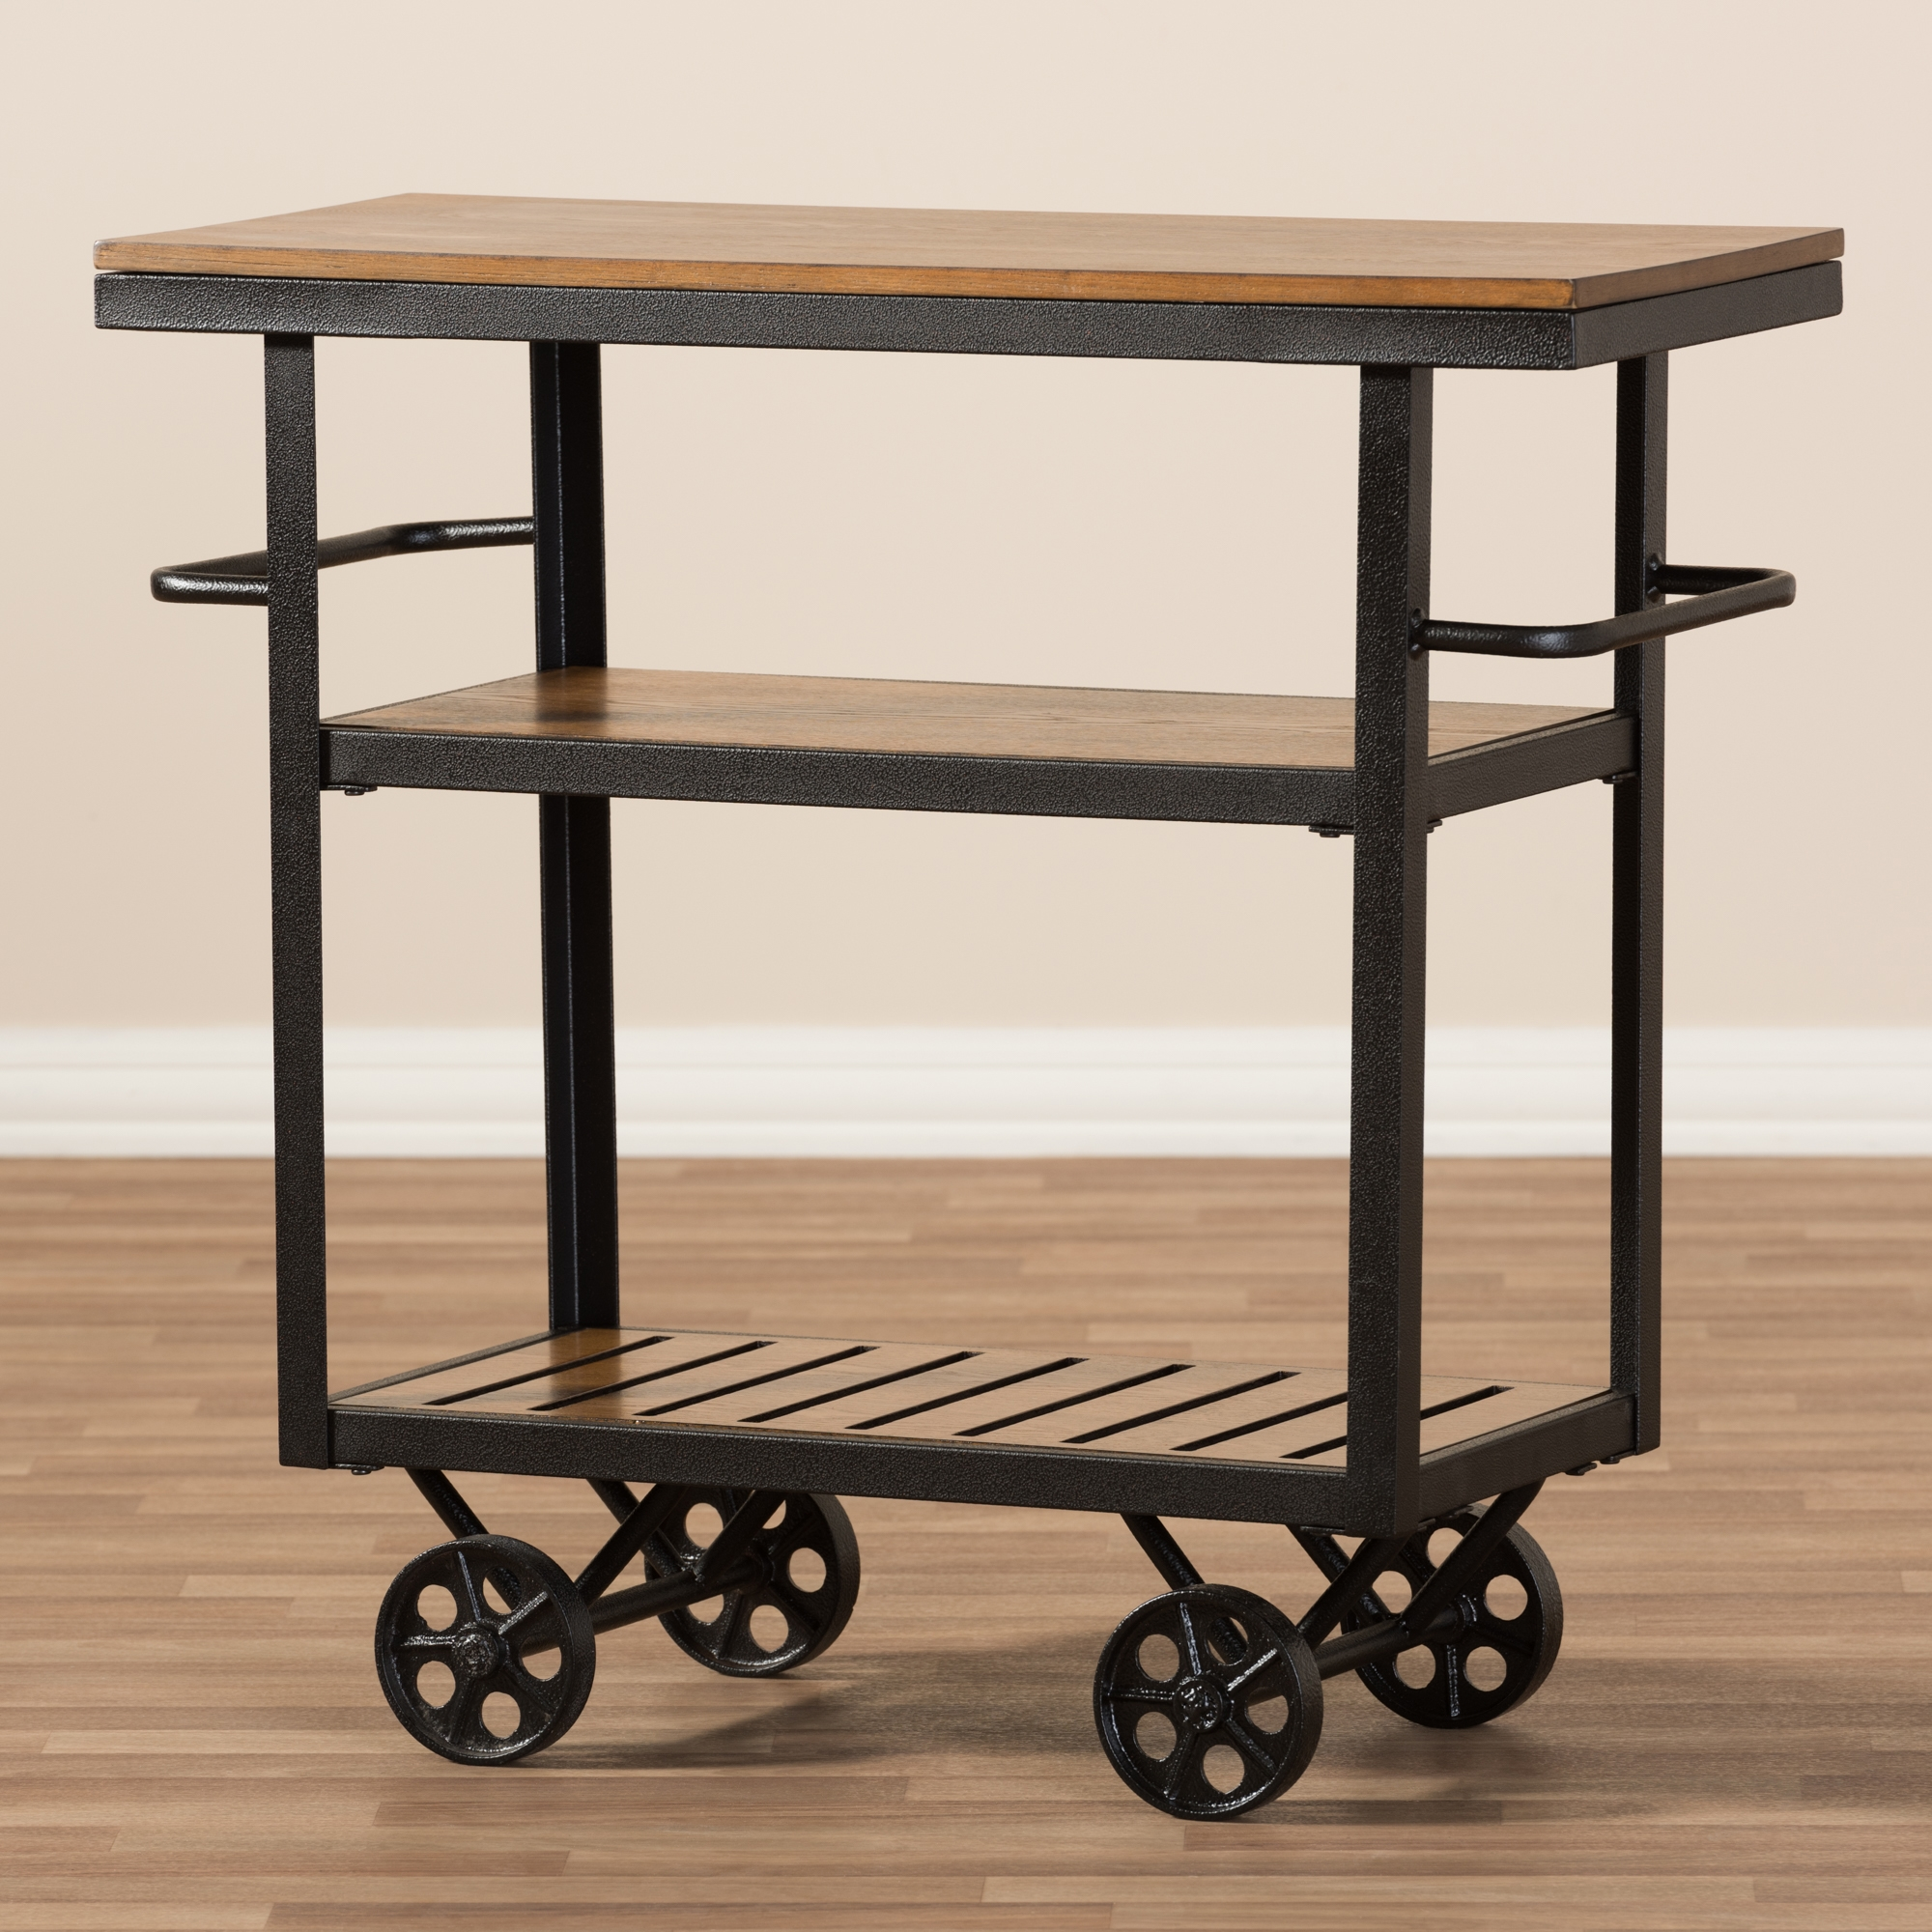 ... Baxton Studio Kennedy Rustic Industrial Style Antique Black Textured  Finished Metal Distressed Wood Mobile Serving Cart